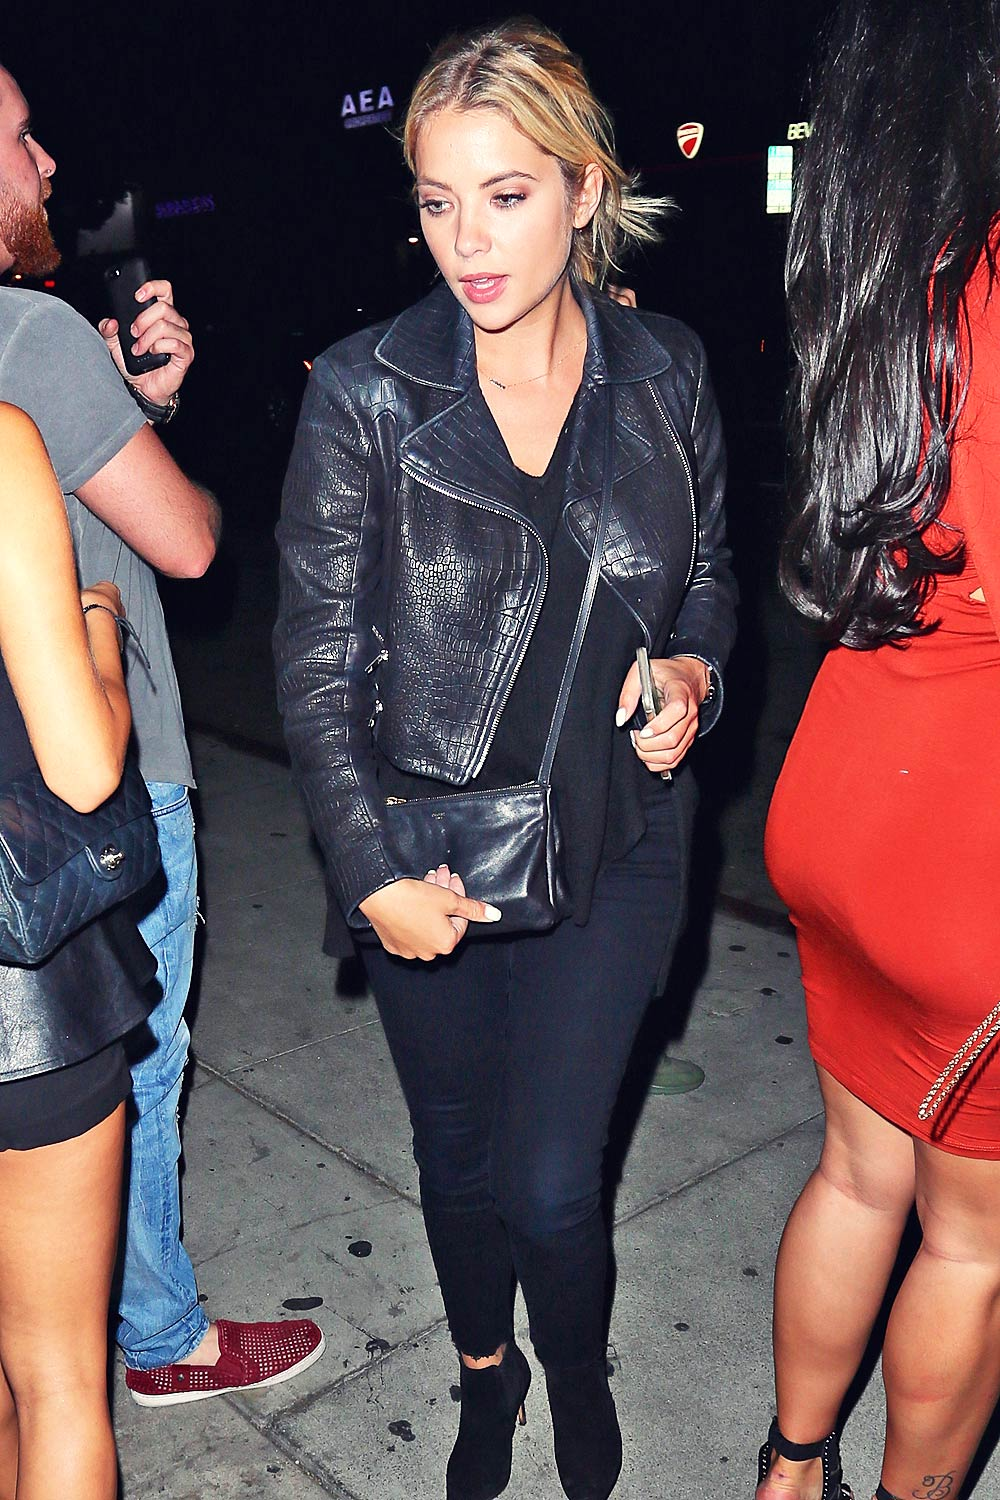 Ashley Benson at the Nice Guy Club